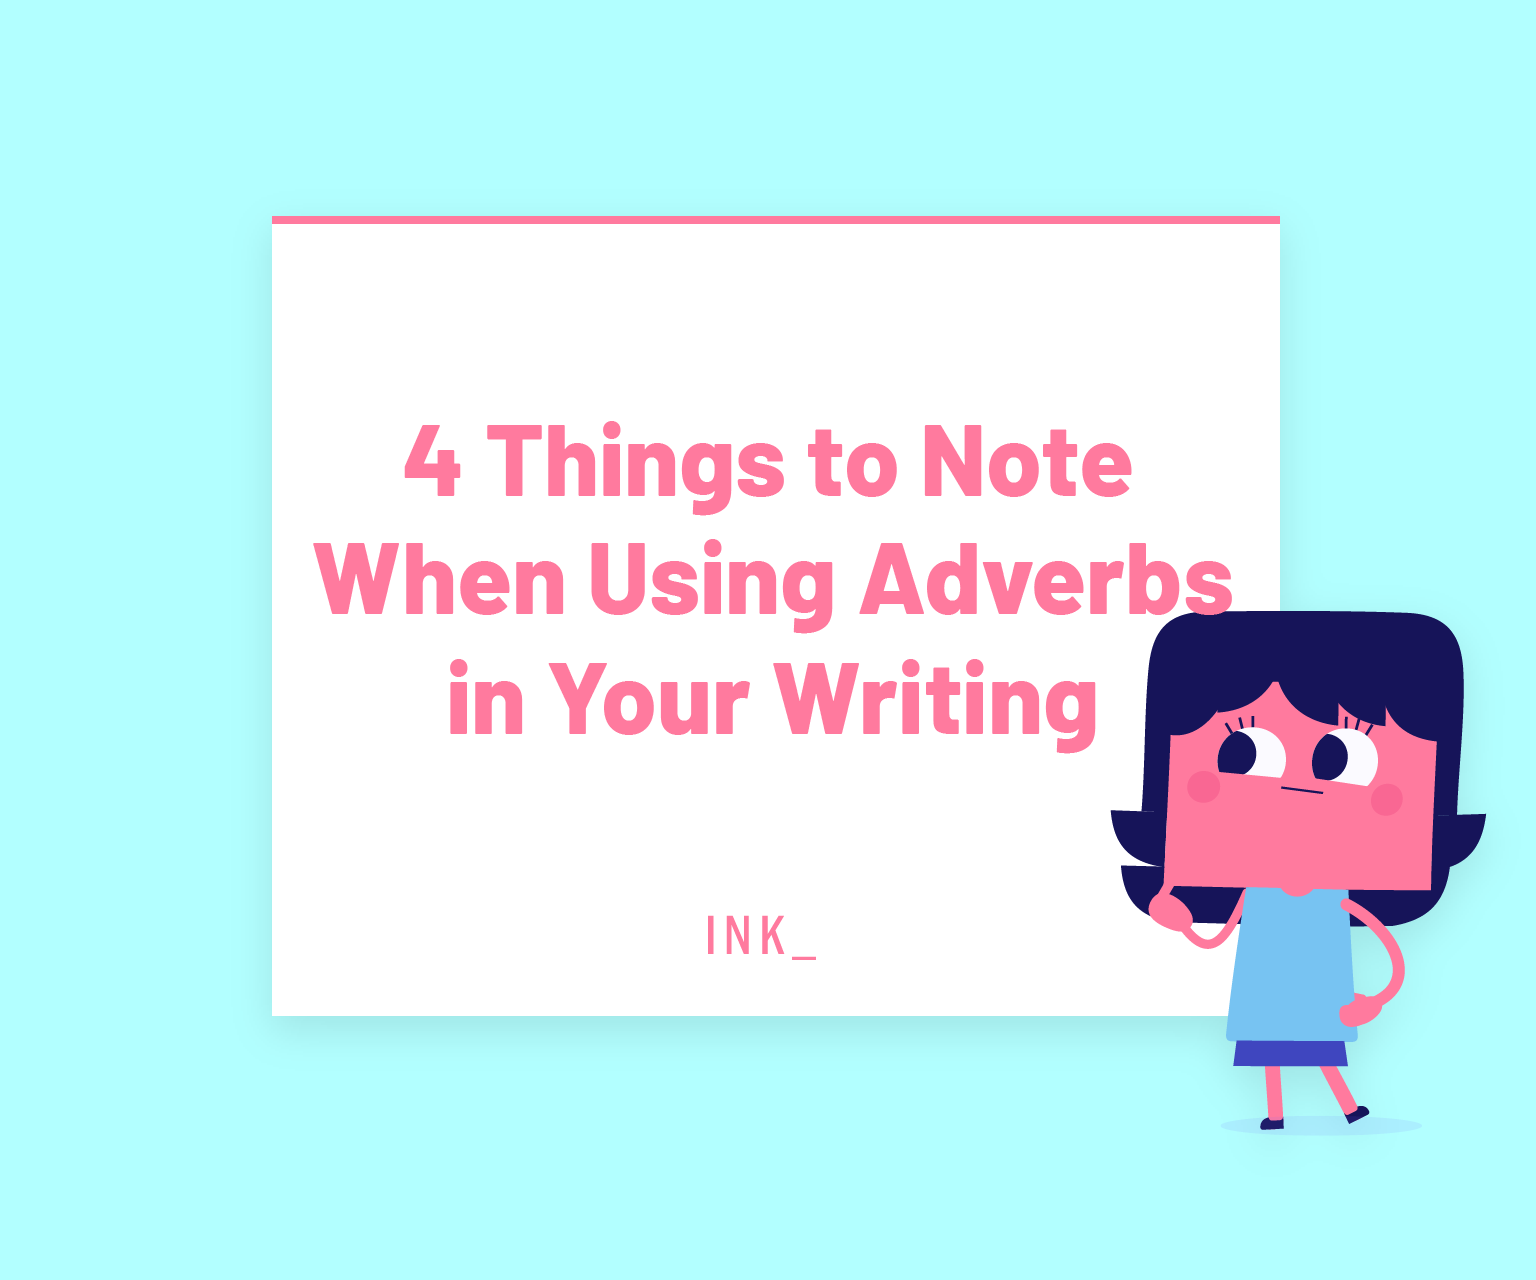 4 things to note when using adverbs in your writing